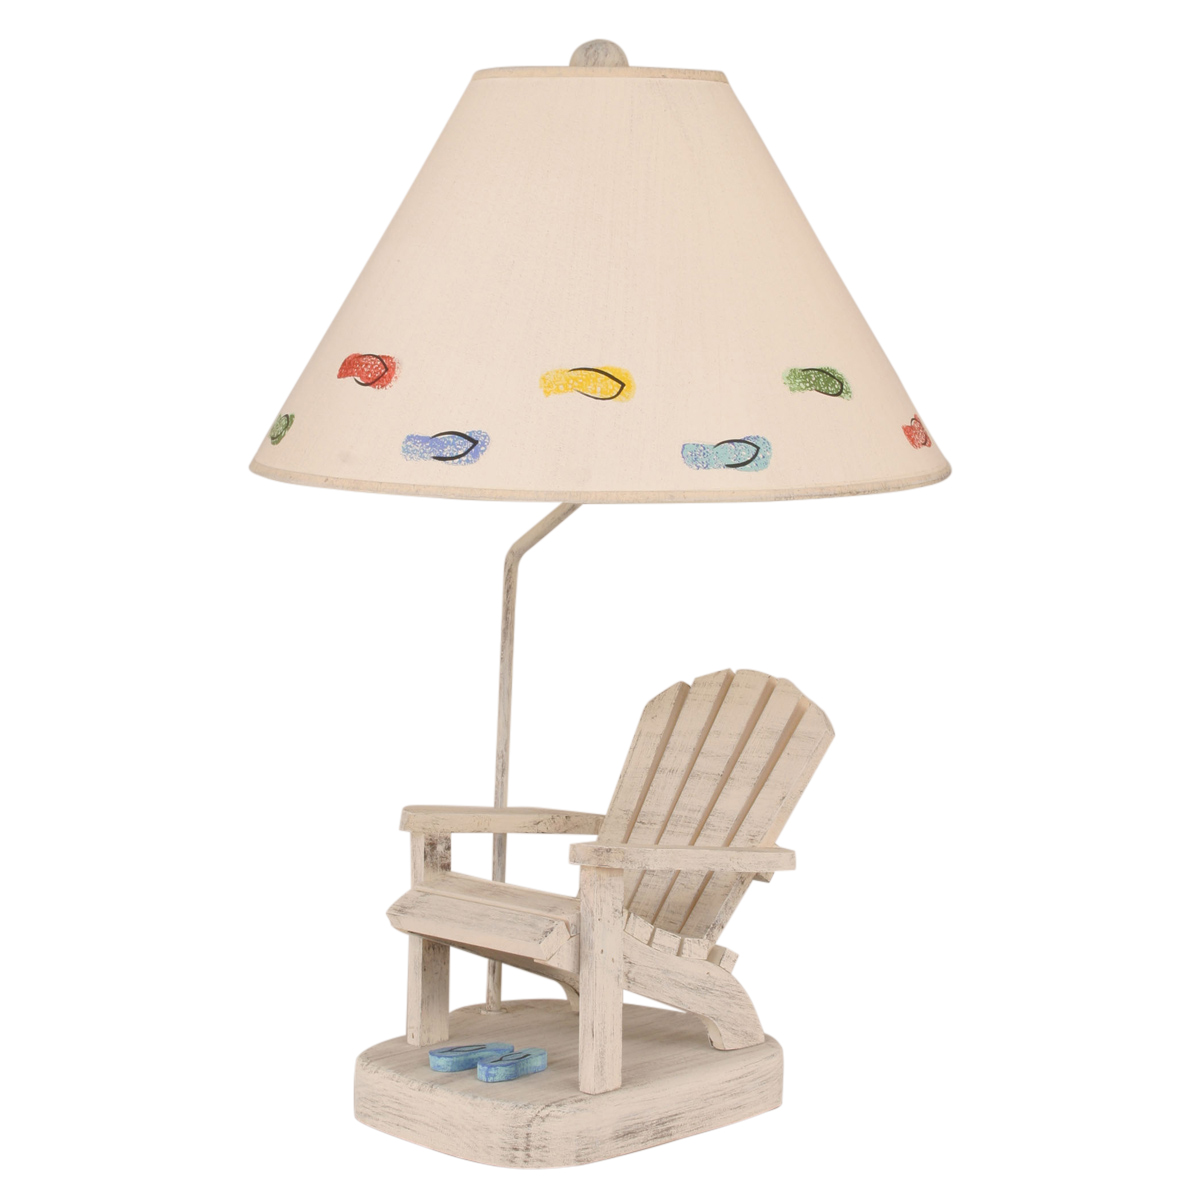 Adirondack Chair Table Lamp with Blue Flip Flops